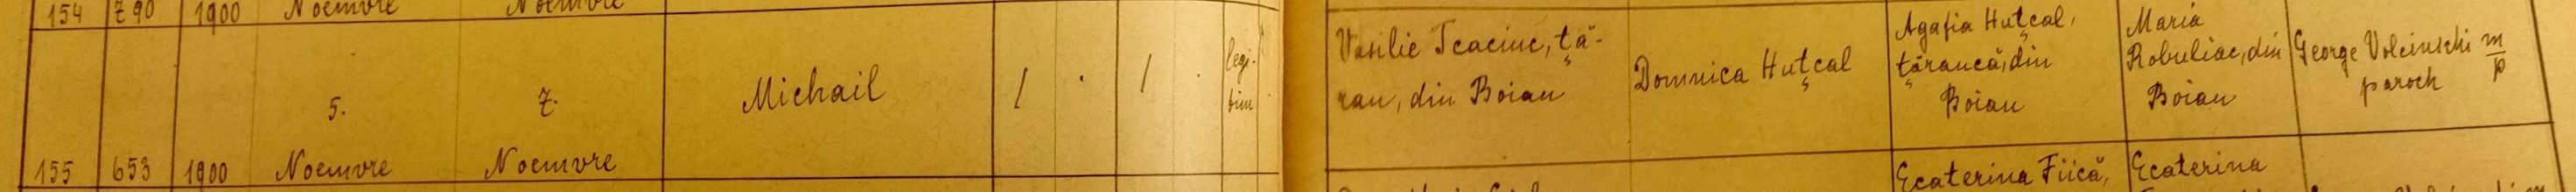 Michail-birth-record---1900